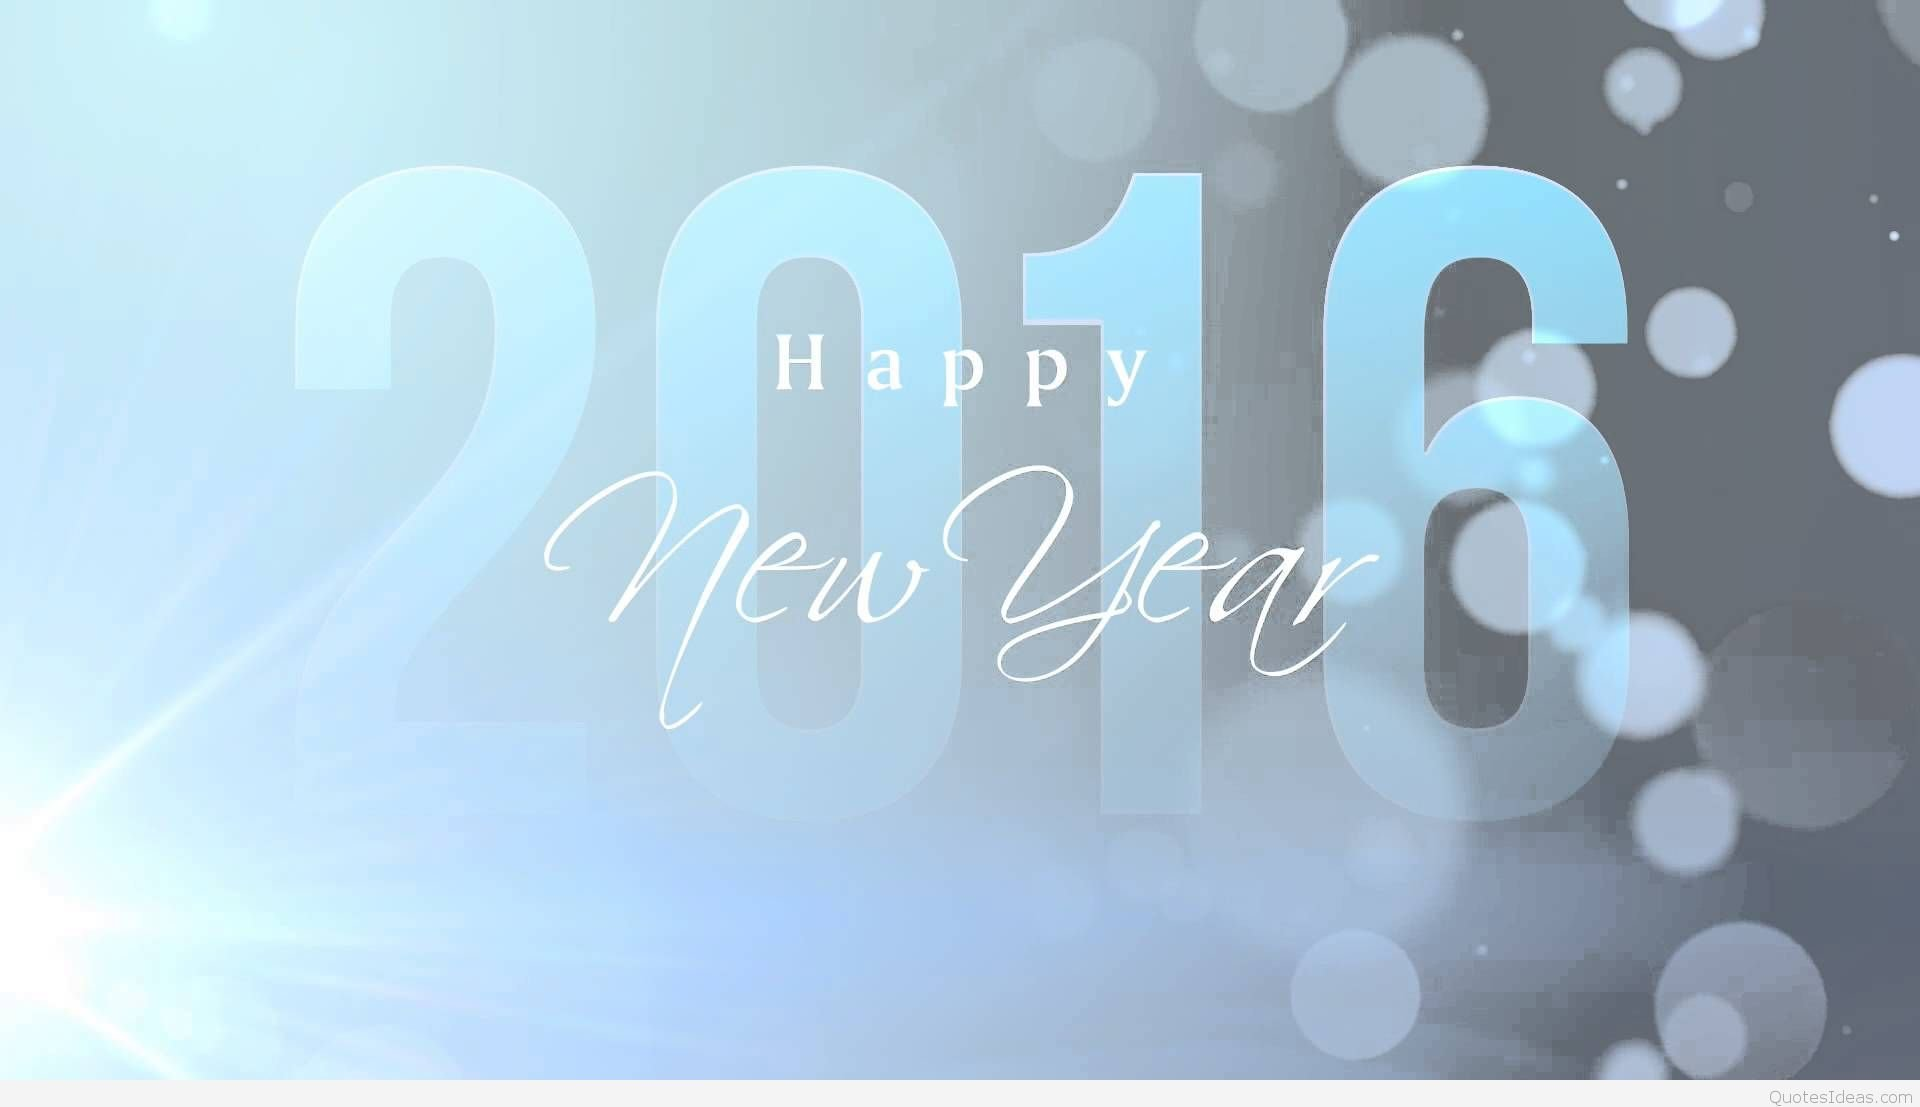 Happy new year photos wallpapers sayings 2016 1920x1107